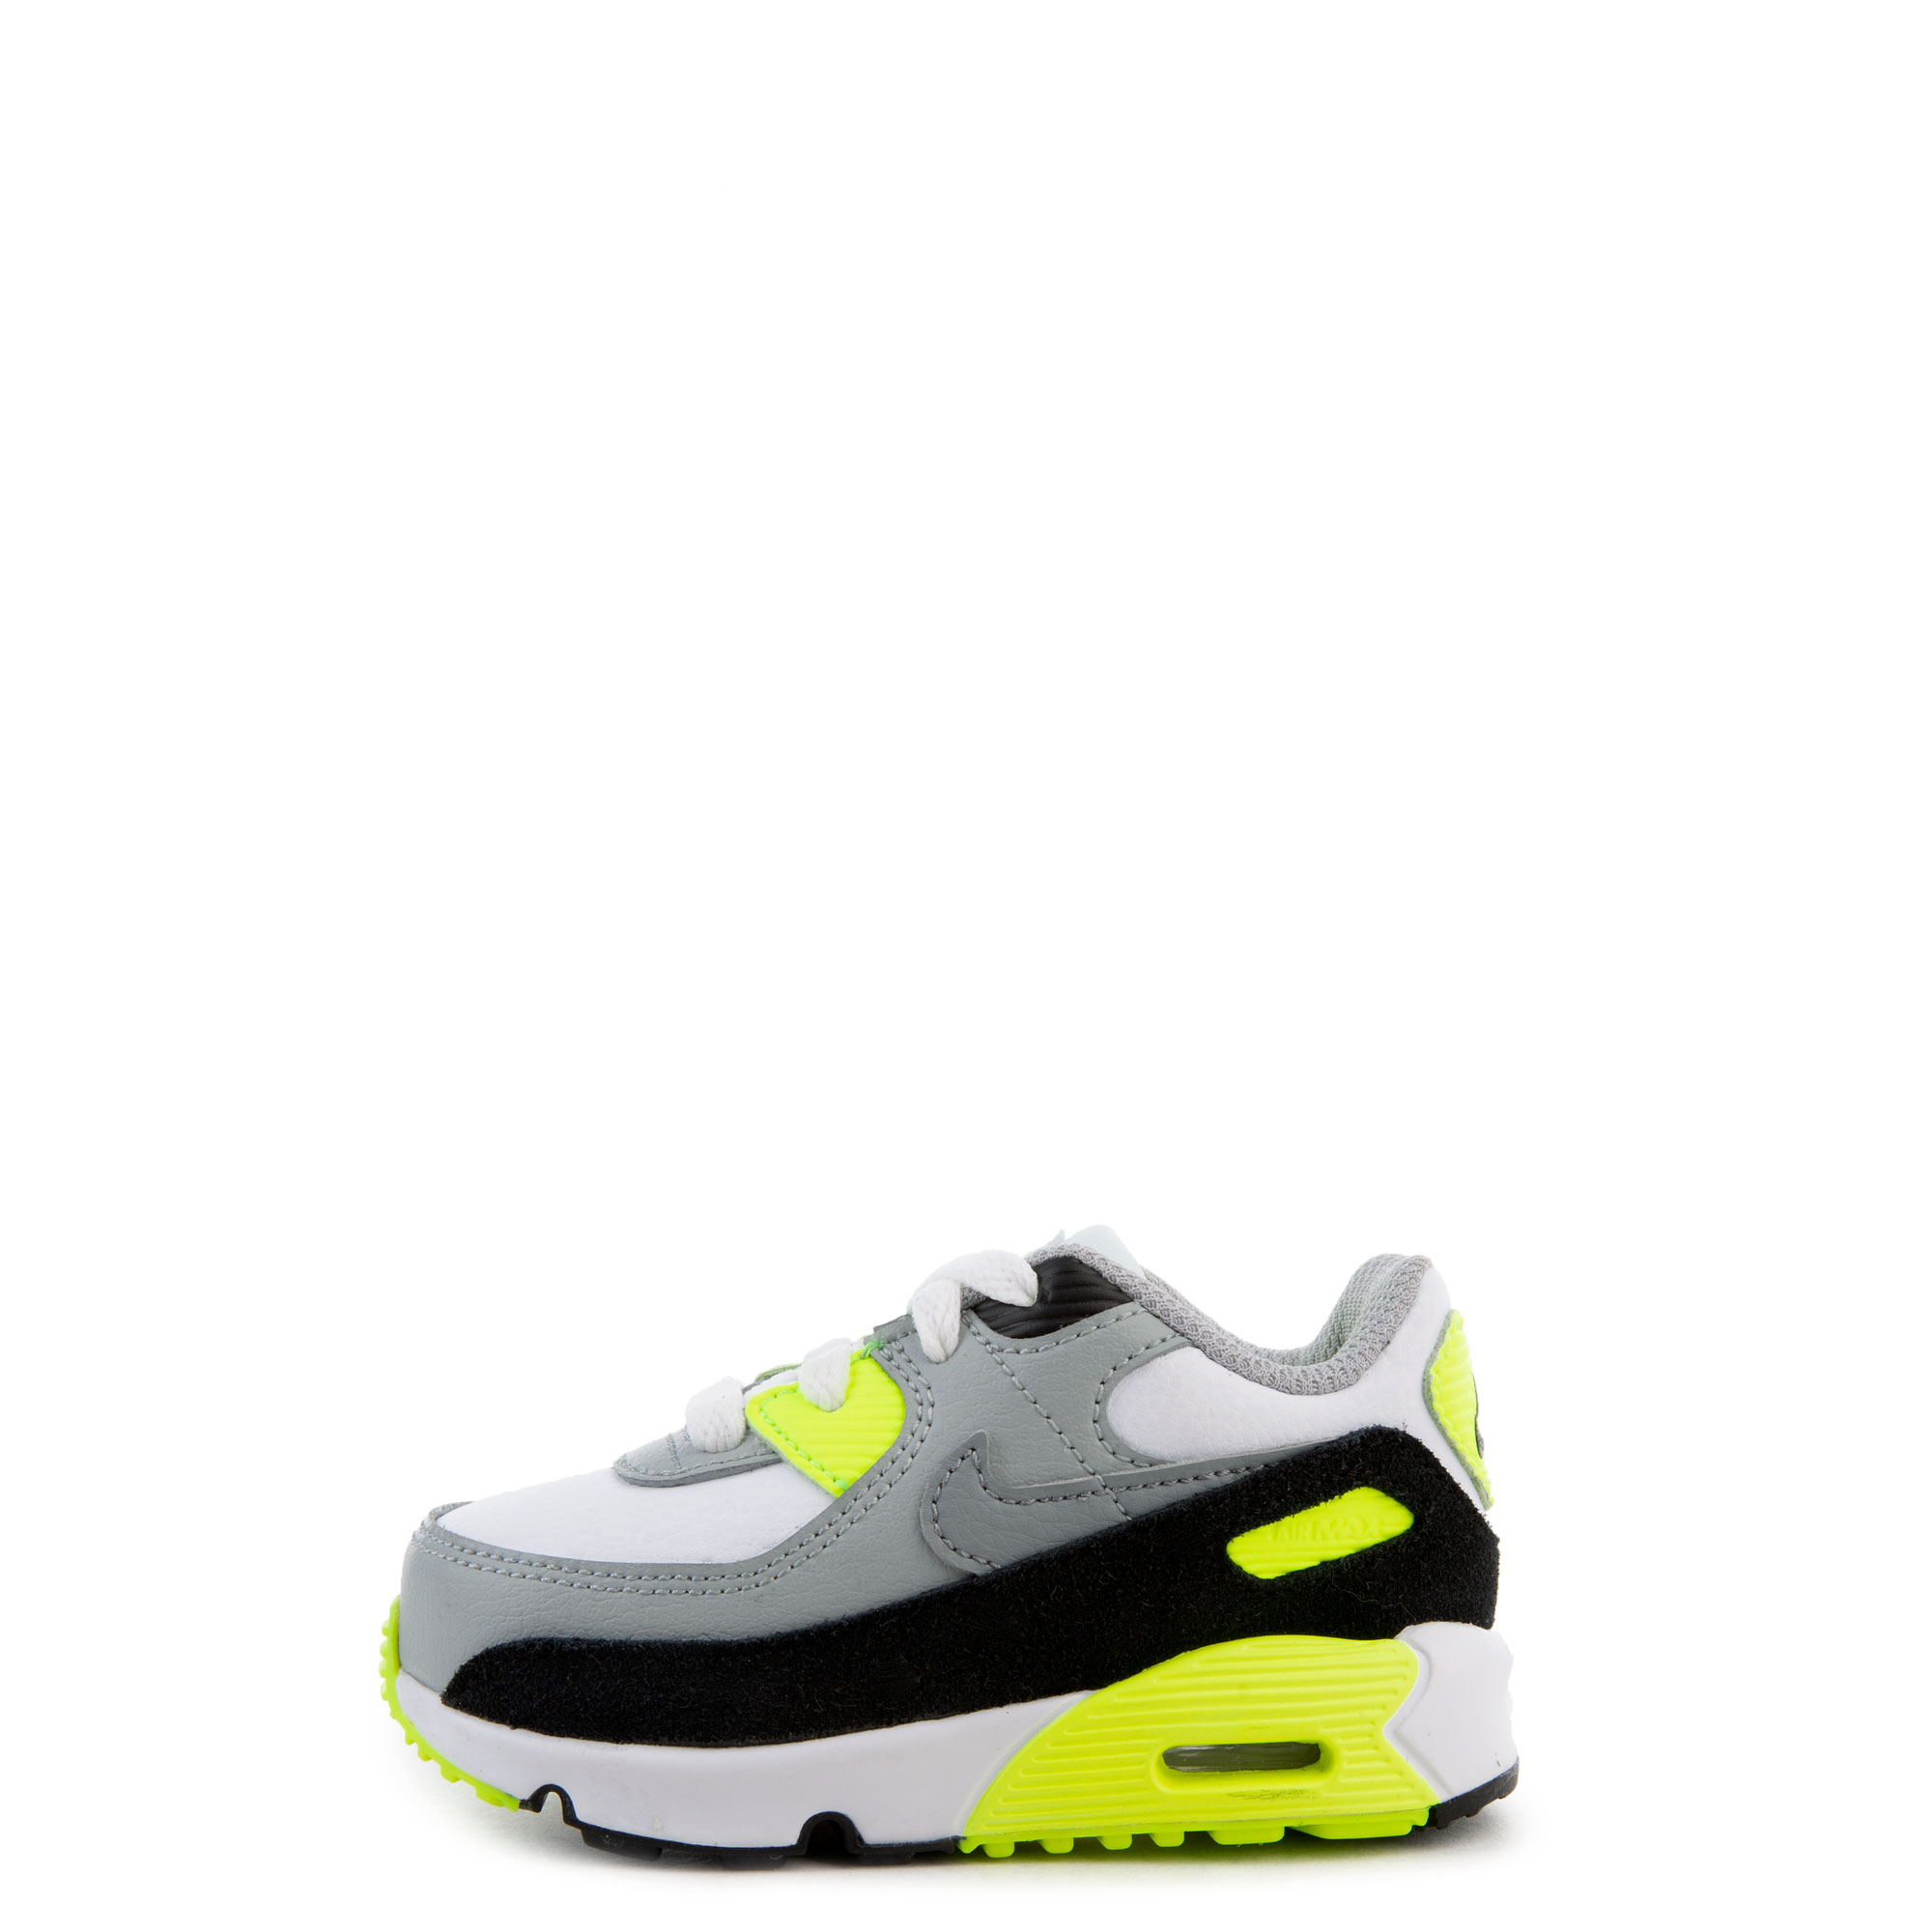 Td Air Max 90 White Particle Grey Lt Smoke Grey Volt